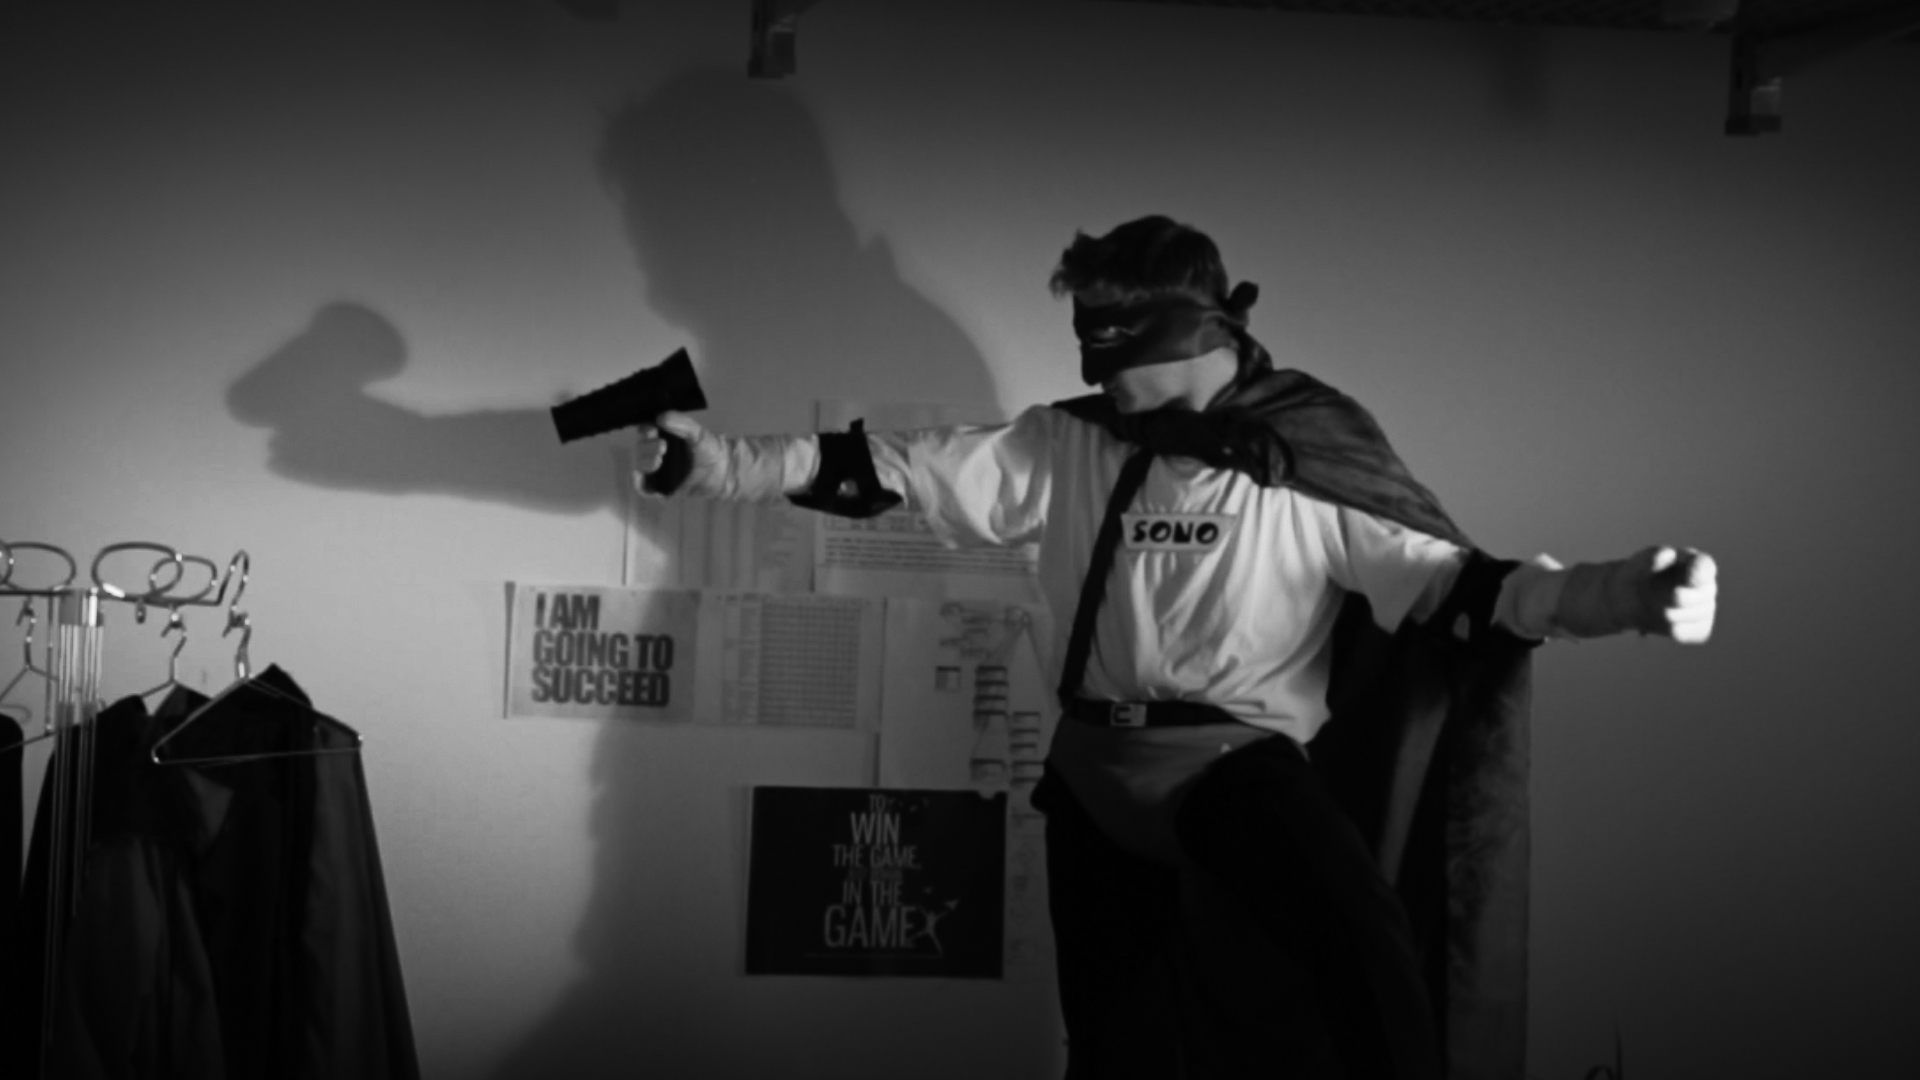 A still image from the clip. The user is now a superhero and pointing the SONO at his surroundings.